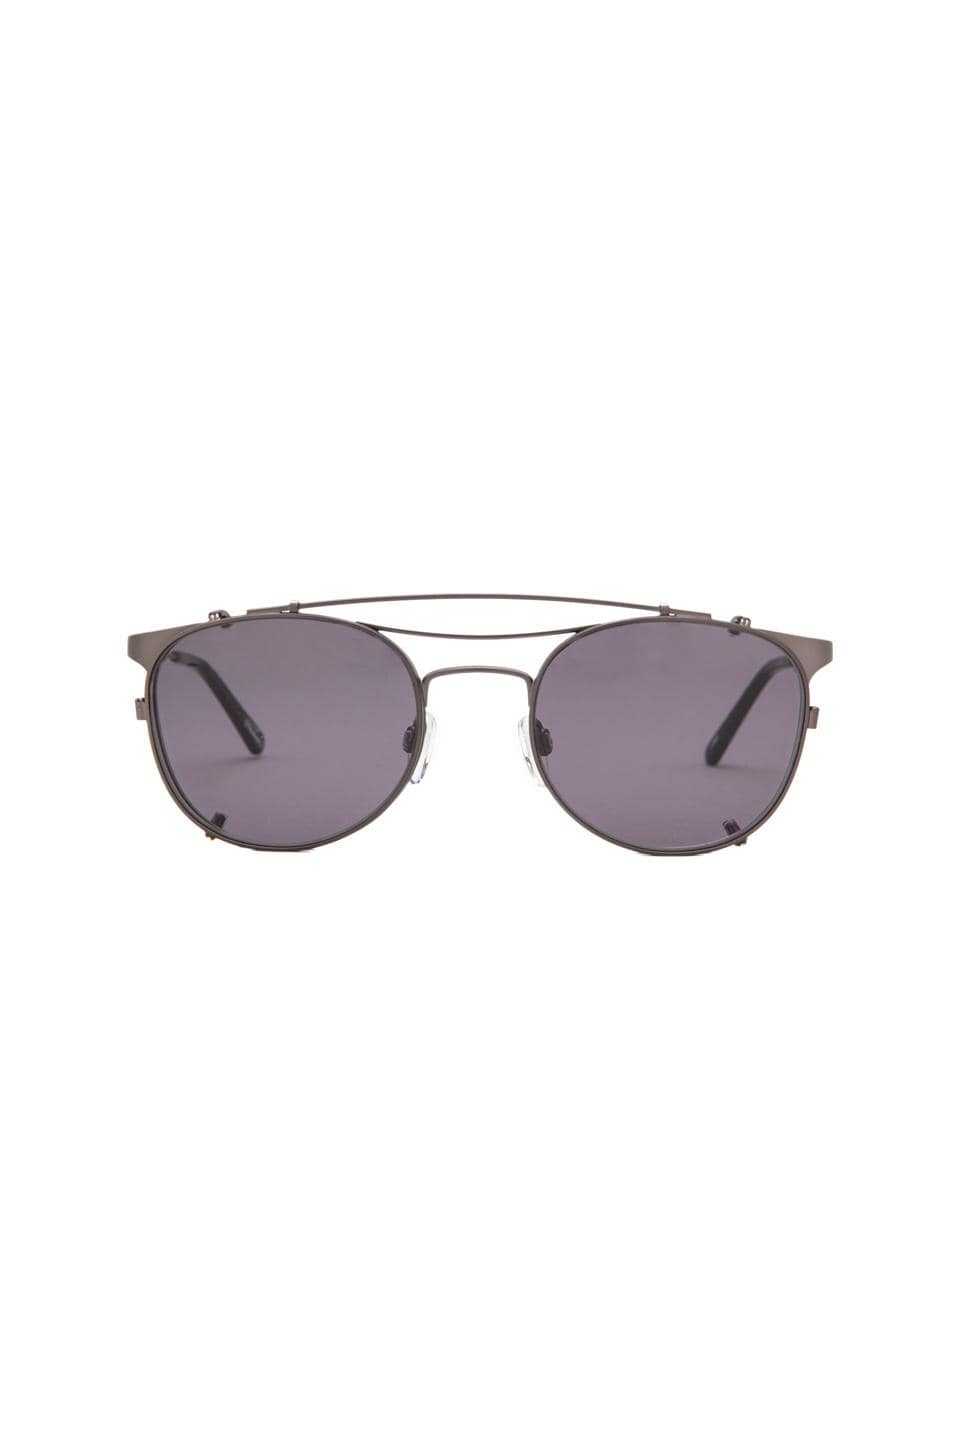 RAEN optics Stryder in Black/Gunmetal